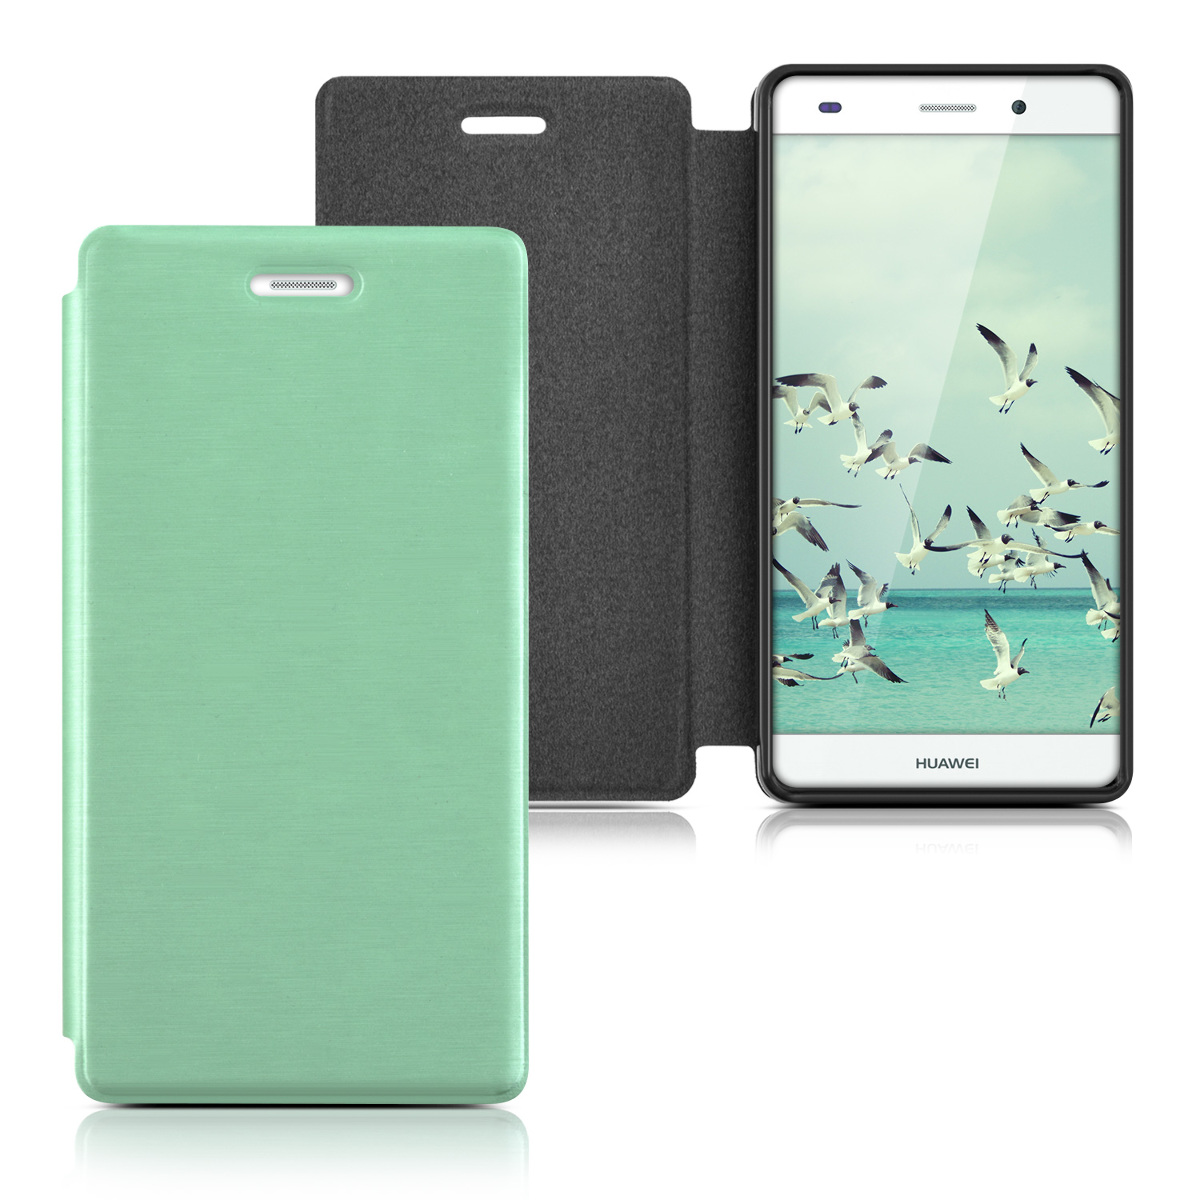 kwmobile flip cover for huawei p8 lite case slim back shell hard mobile phone ebay. Black Bedroom Furniture Sets. Home Design Ideas